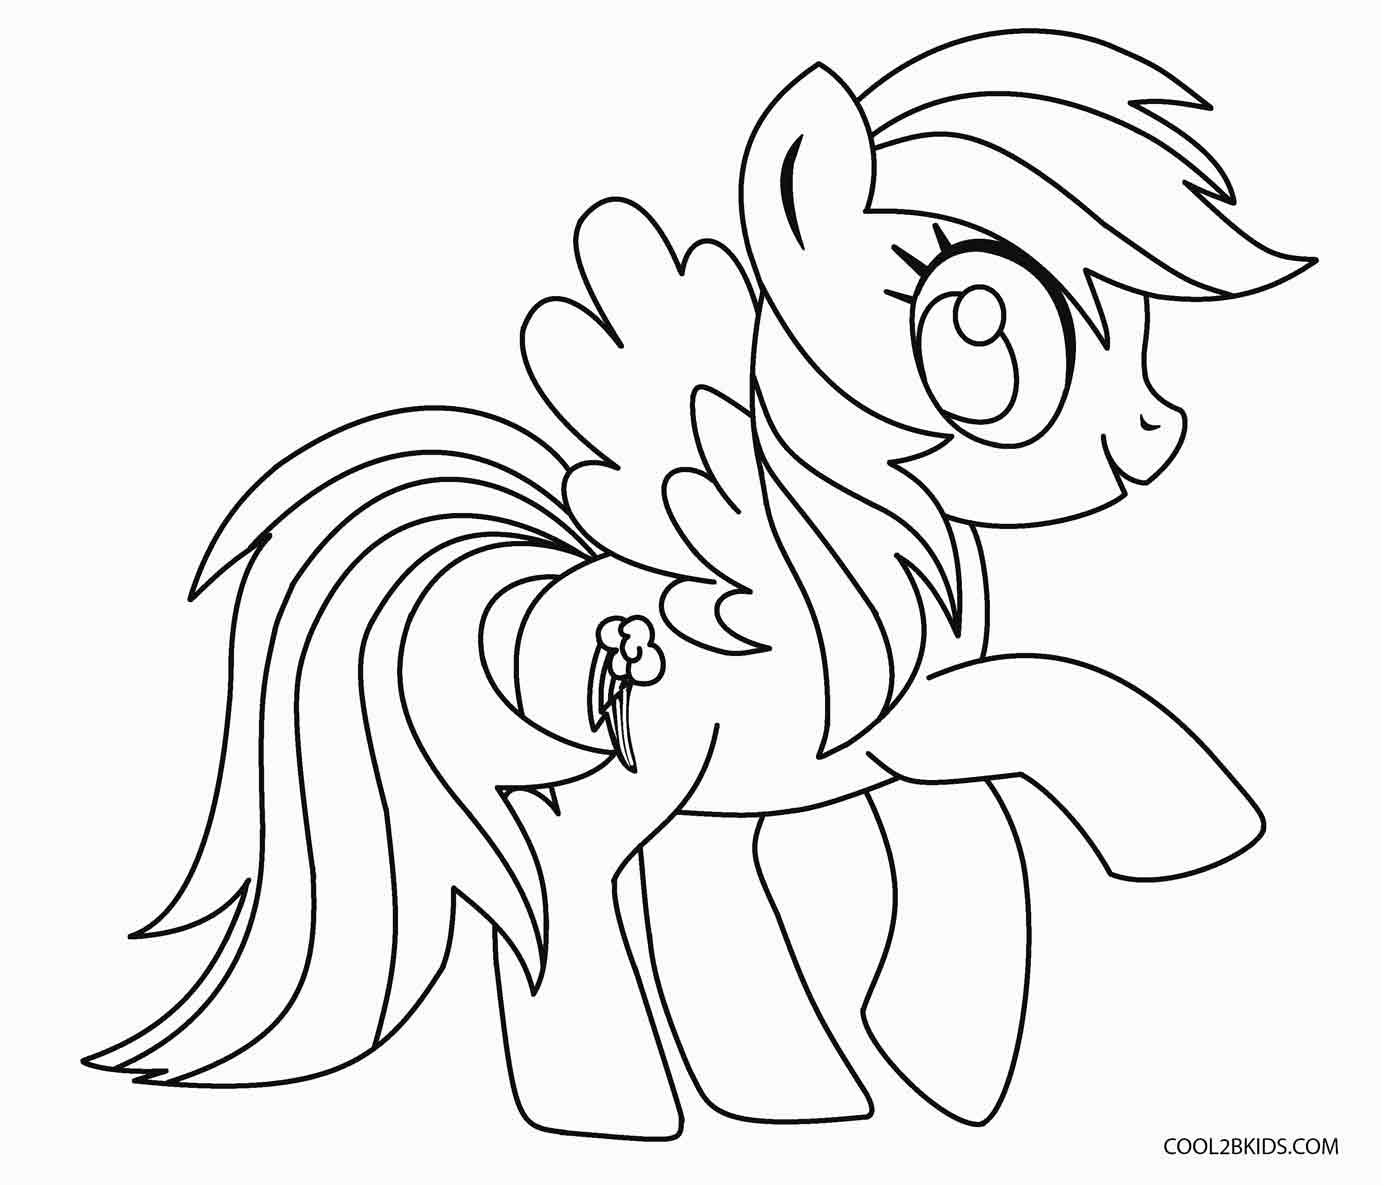 Free Printable My Little Pony Coloring Pages For Kids ...